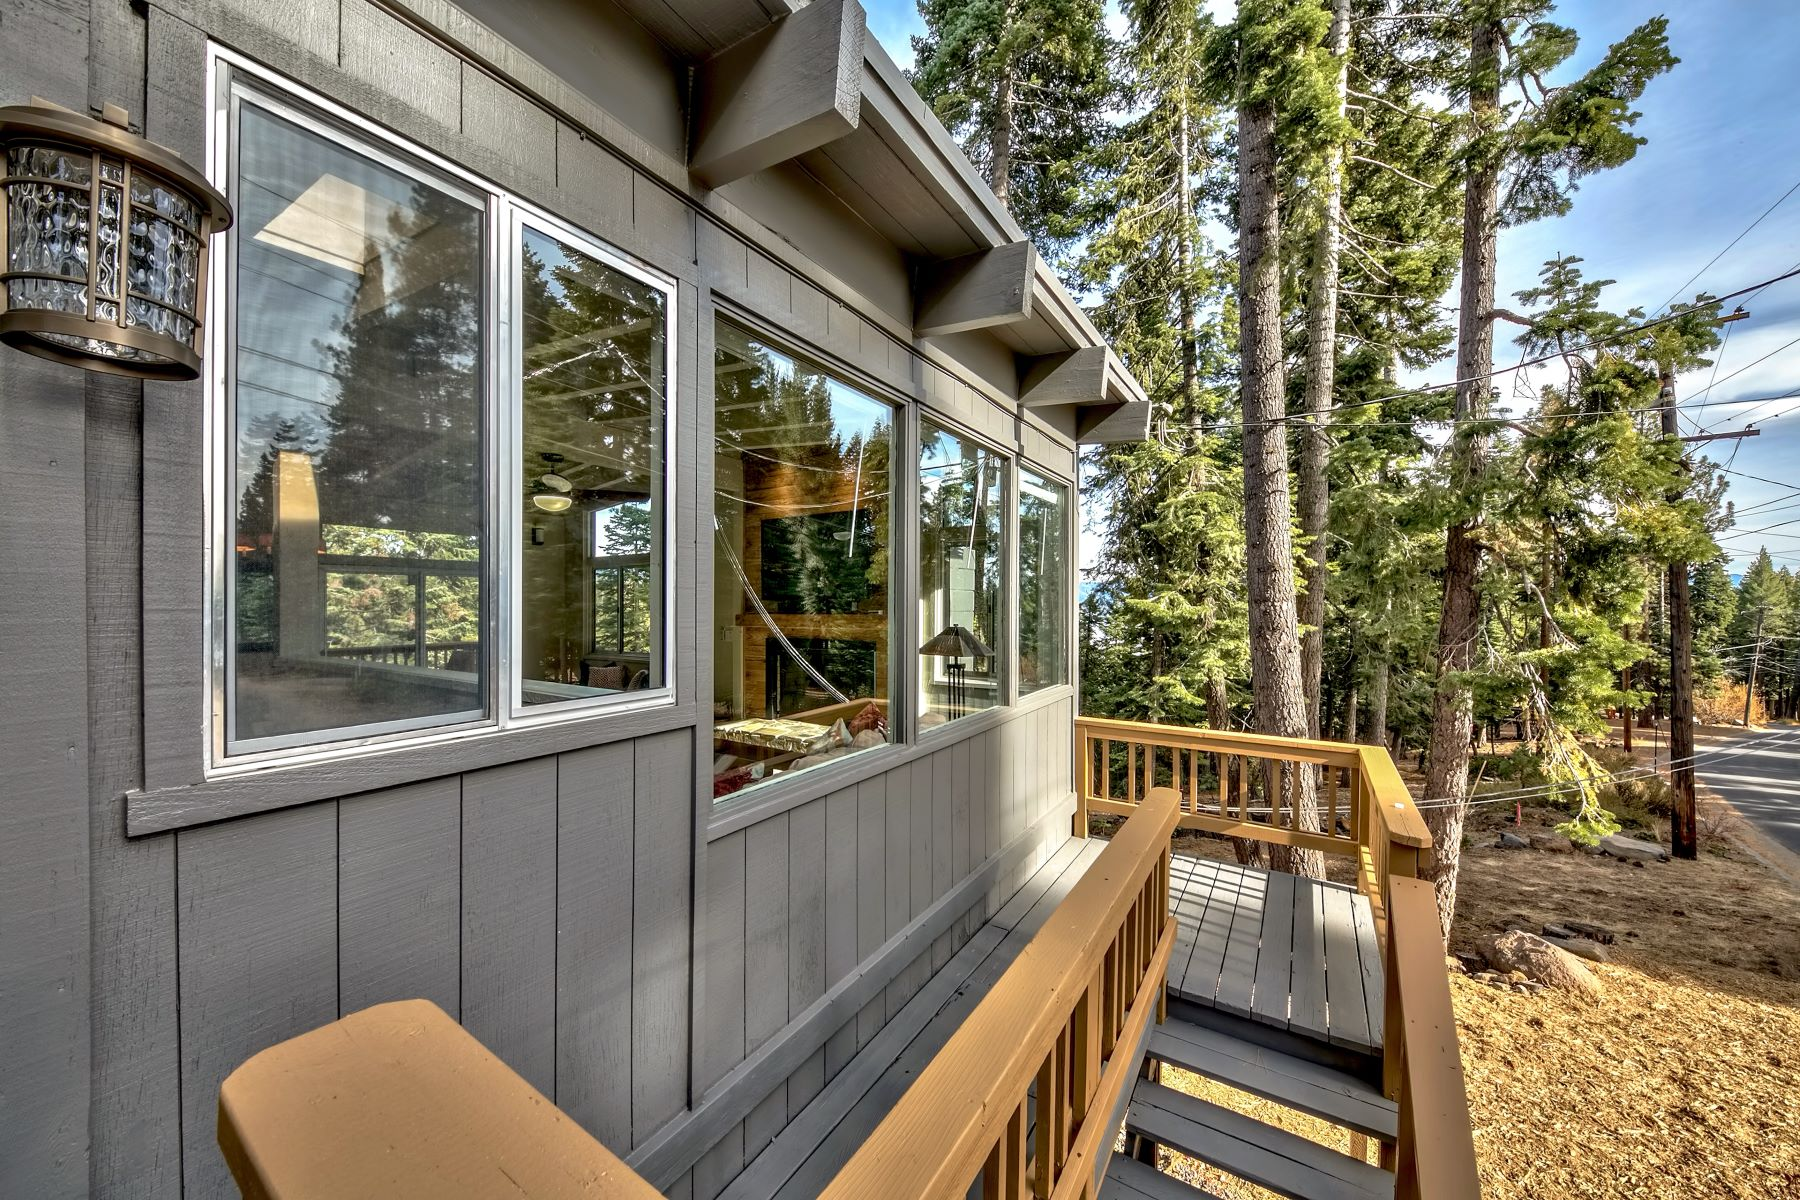 Additional photo for property listing at 618 North Ridge Drive, Carnelian Bay, CA 96140 618 North Ridge Drive Carnelian Bay, California 96140 United States